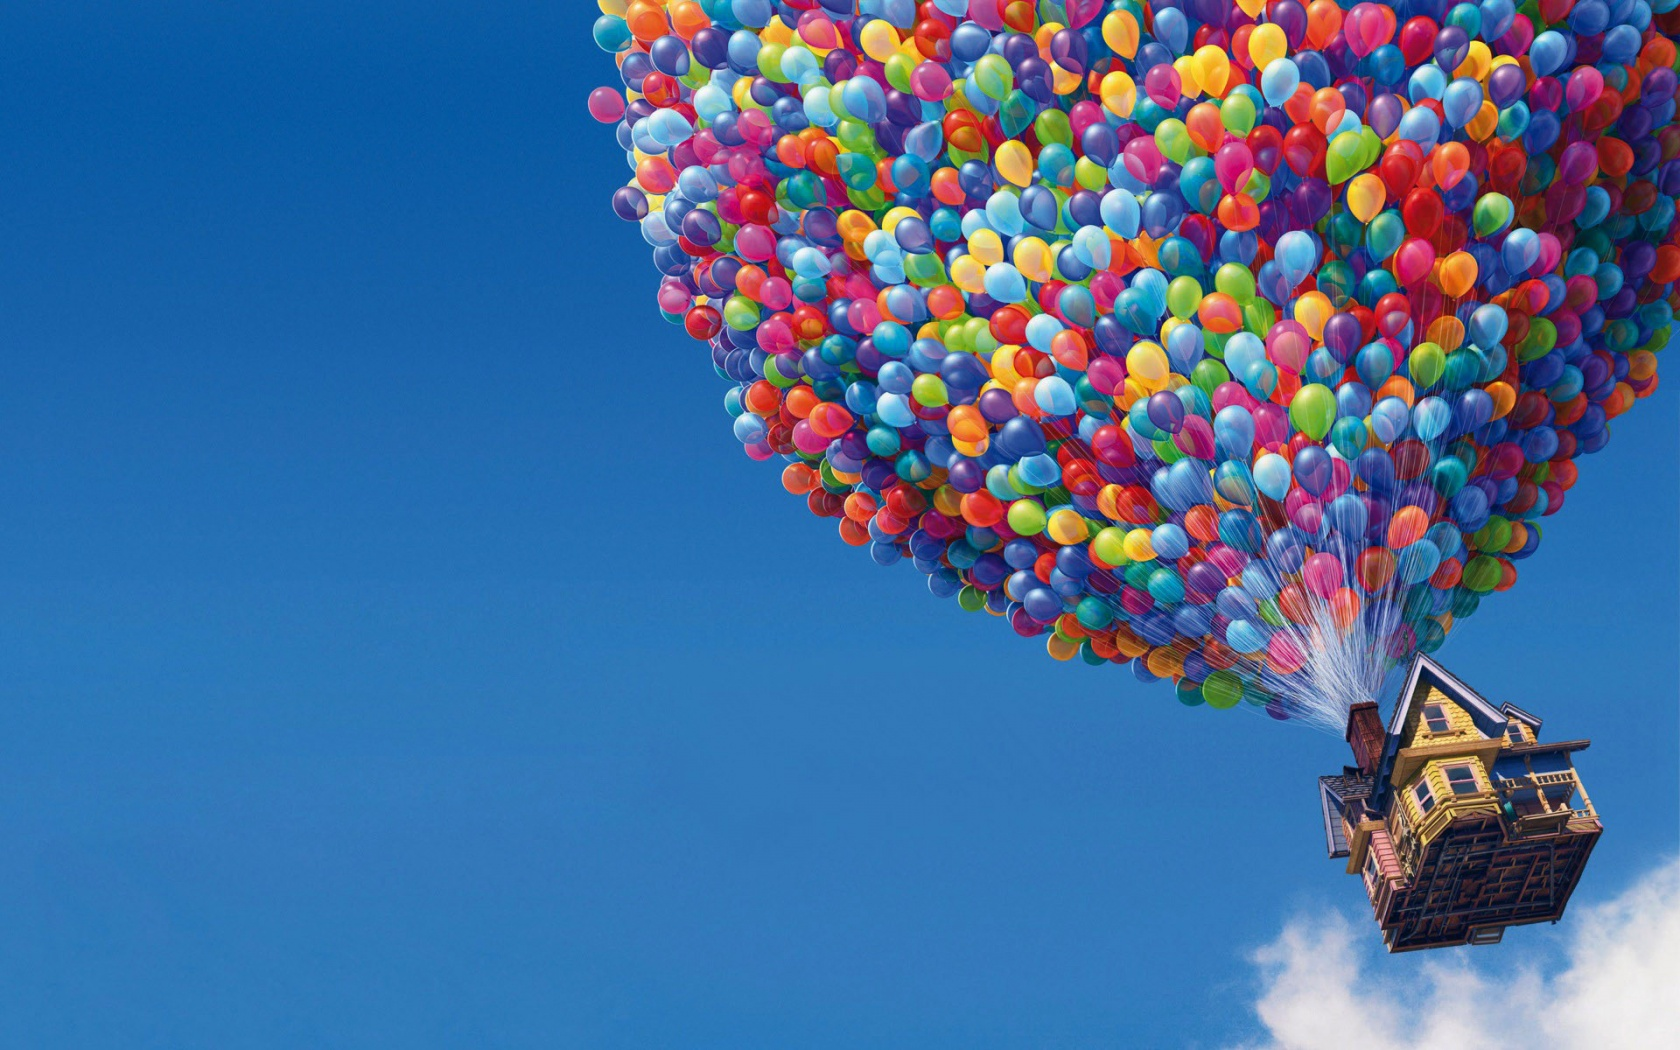 Up Movie Balloons House Wallpapers In Jpg Format For Free Download